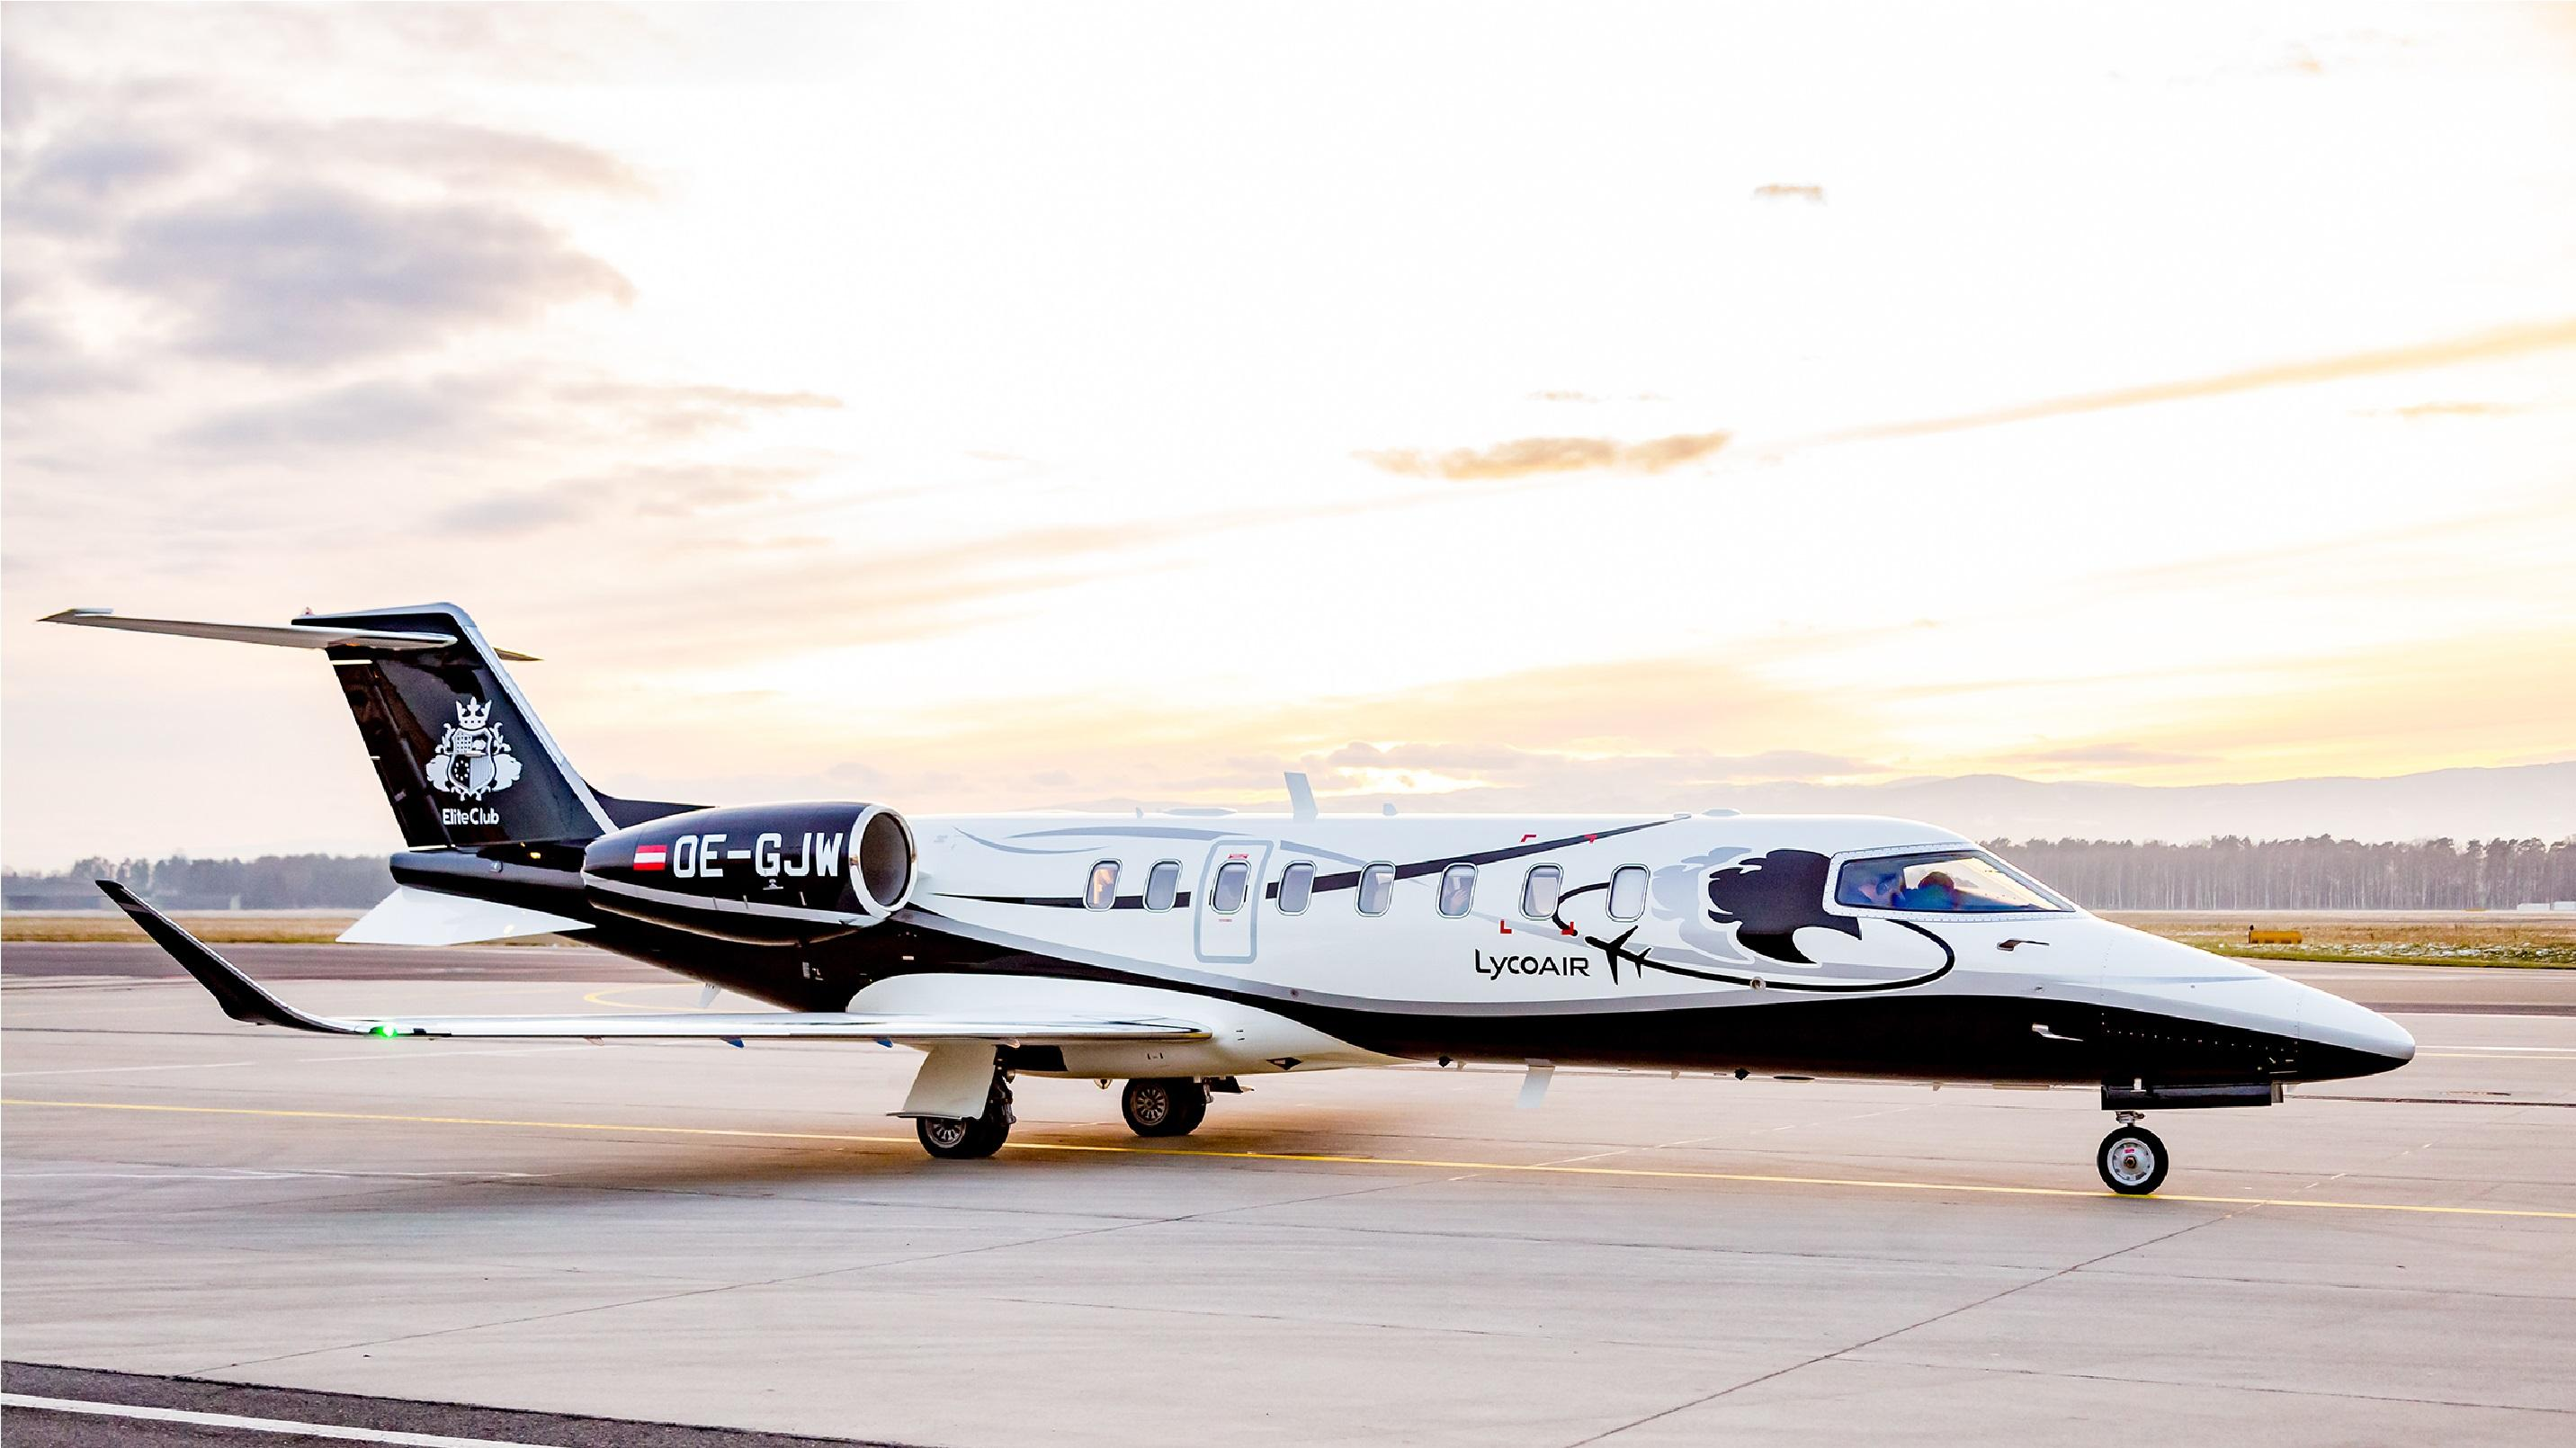 Two brand new Bombardier Learjet 75's have joined our charter fleet